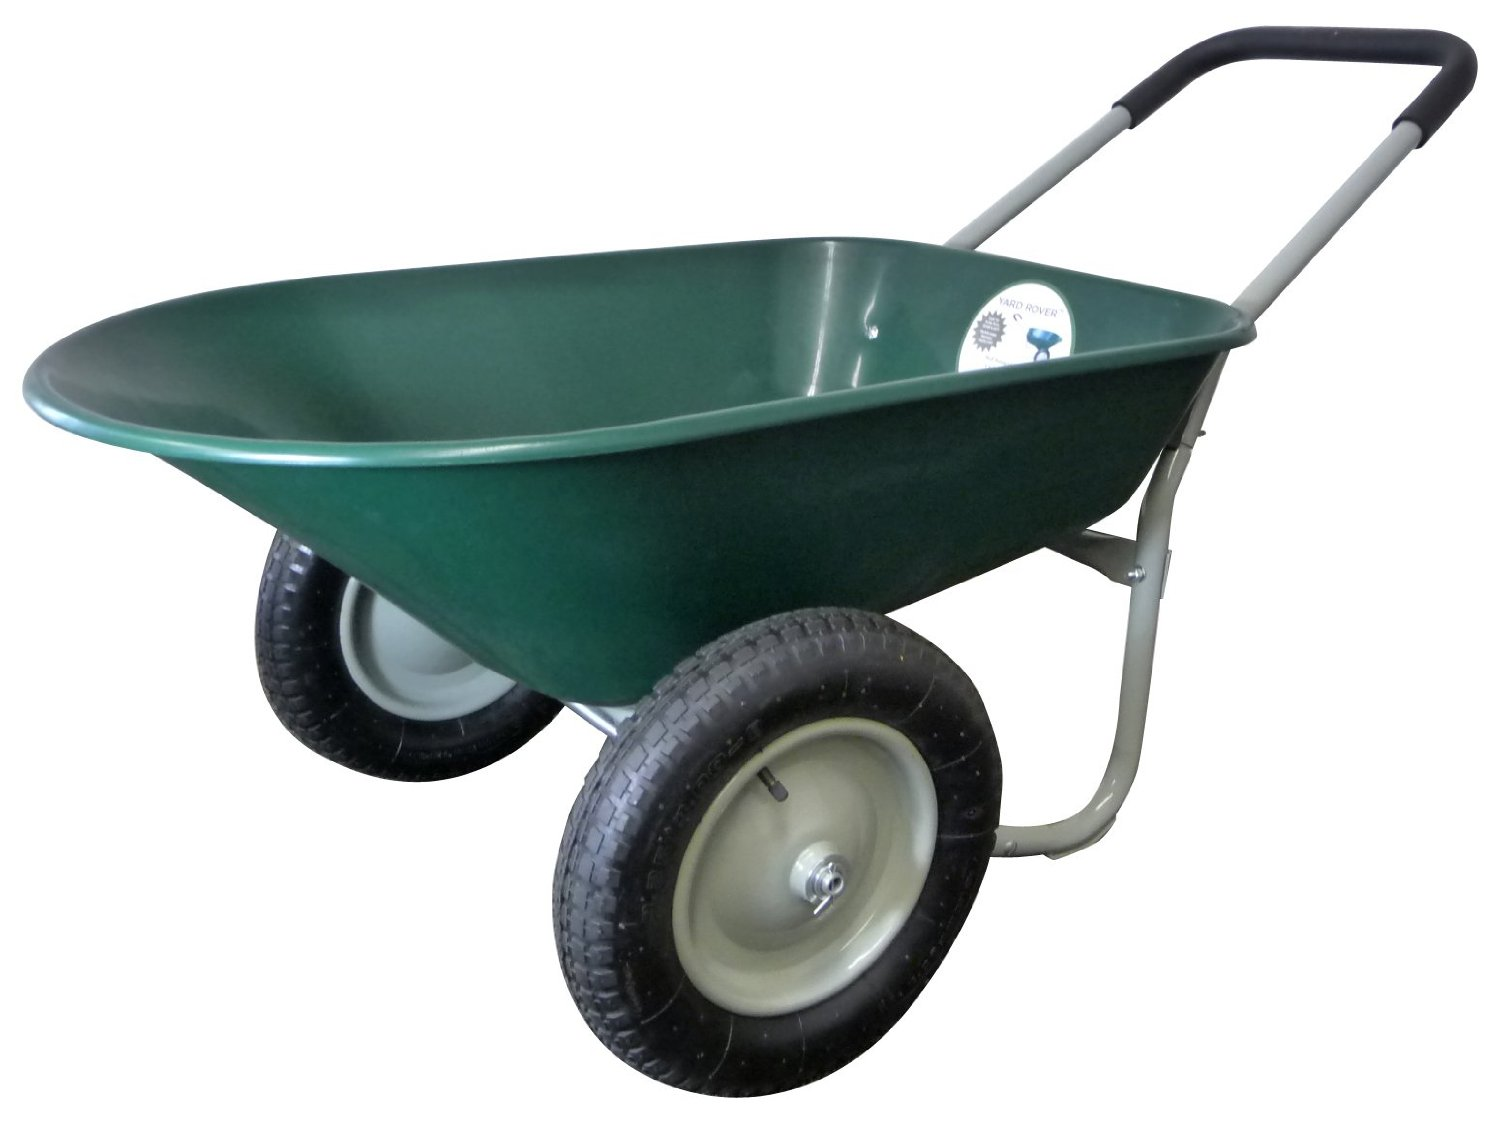 Marathon Dual-Wheel Residential Wheelbarrow